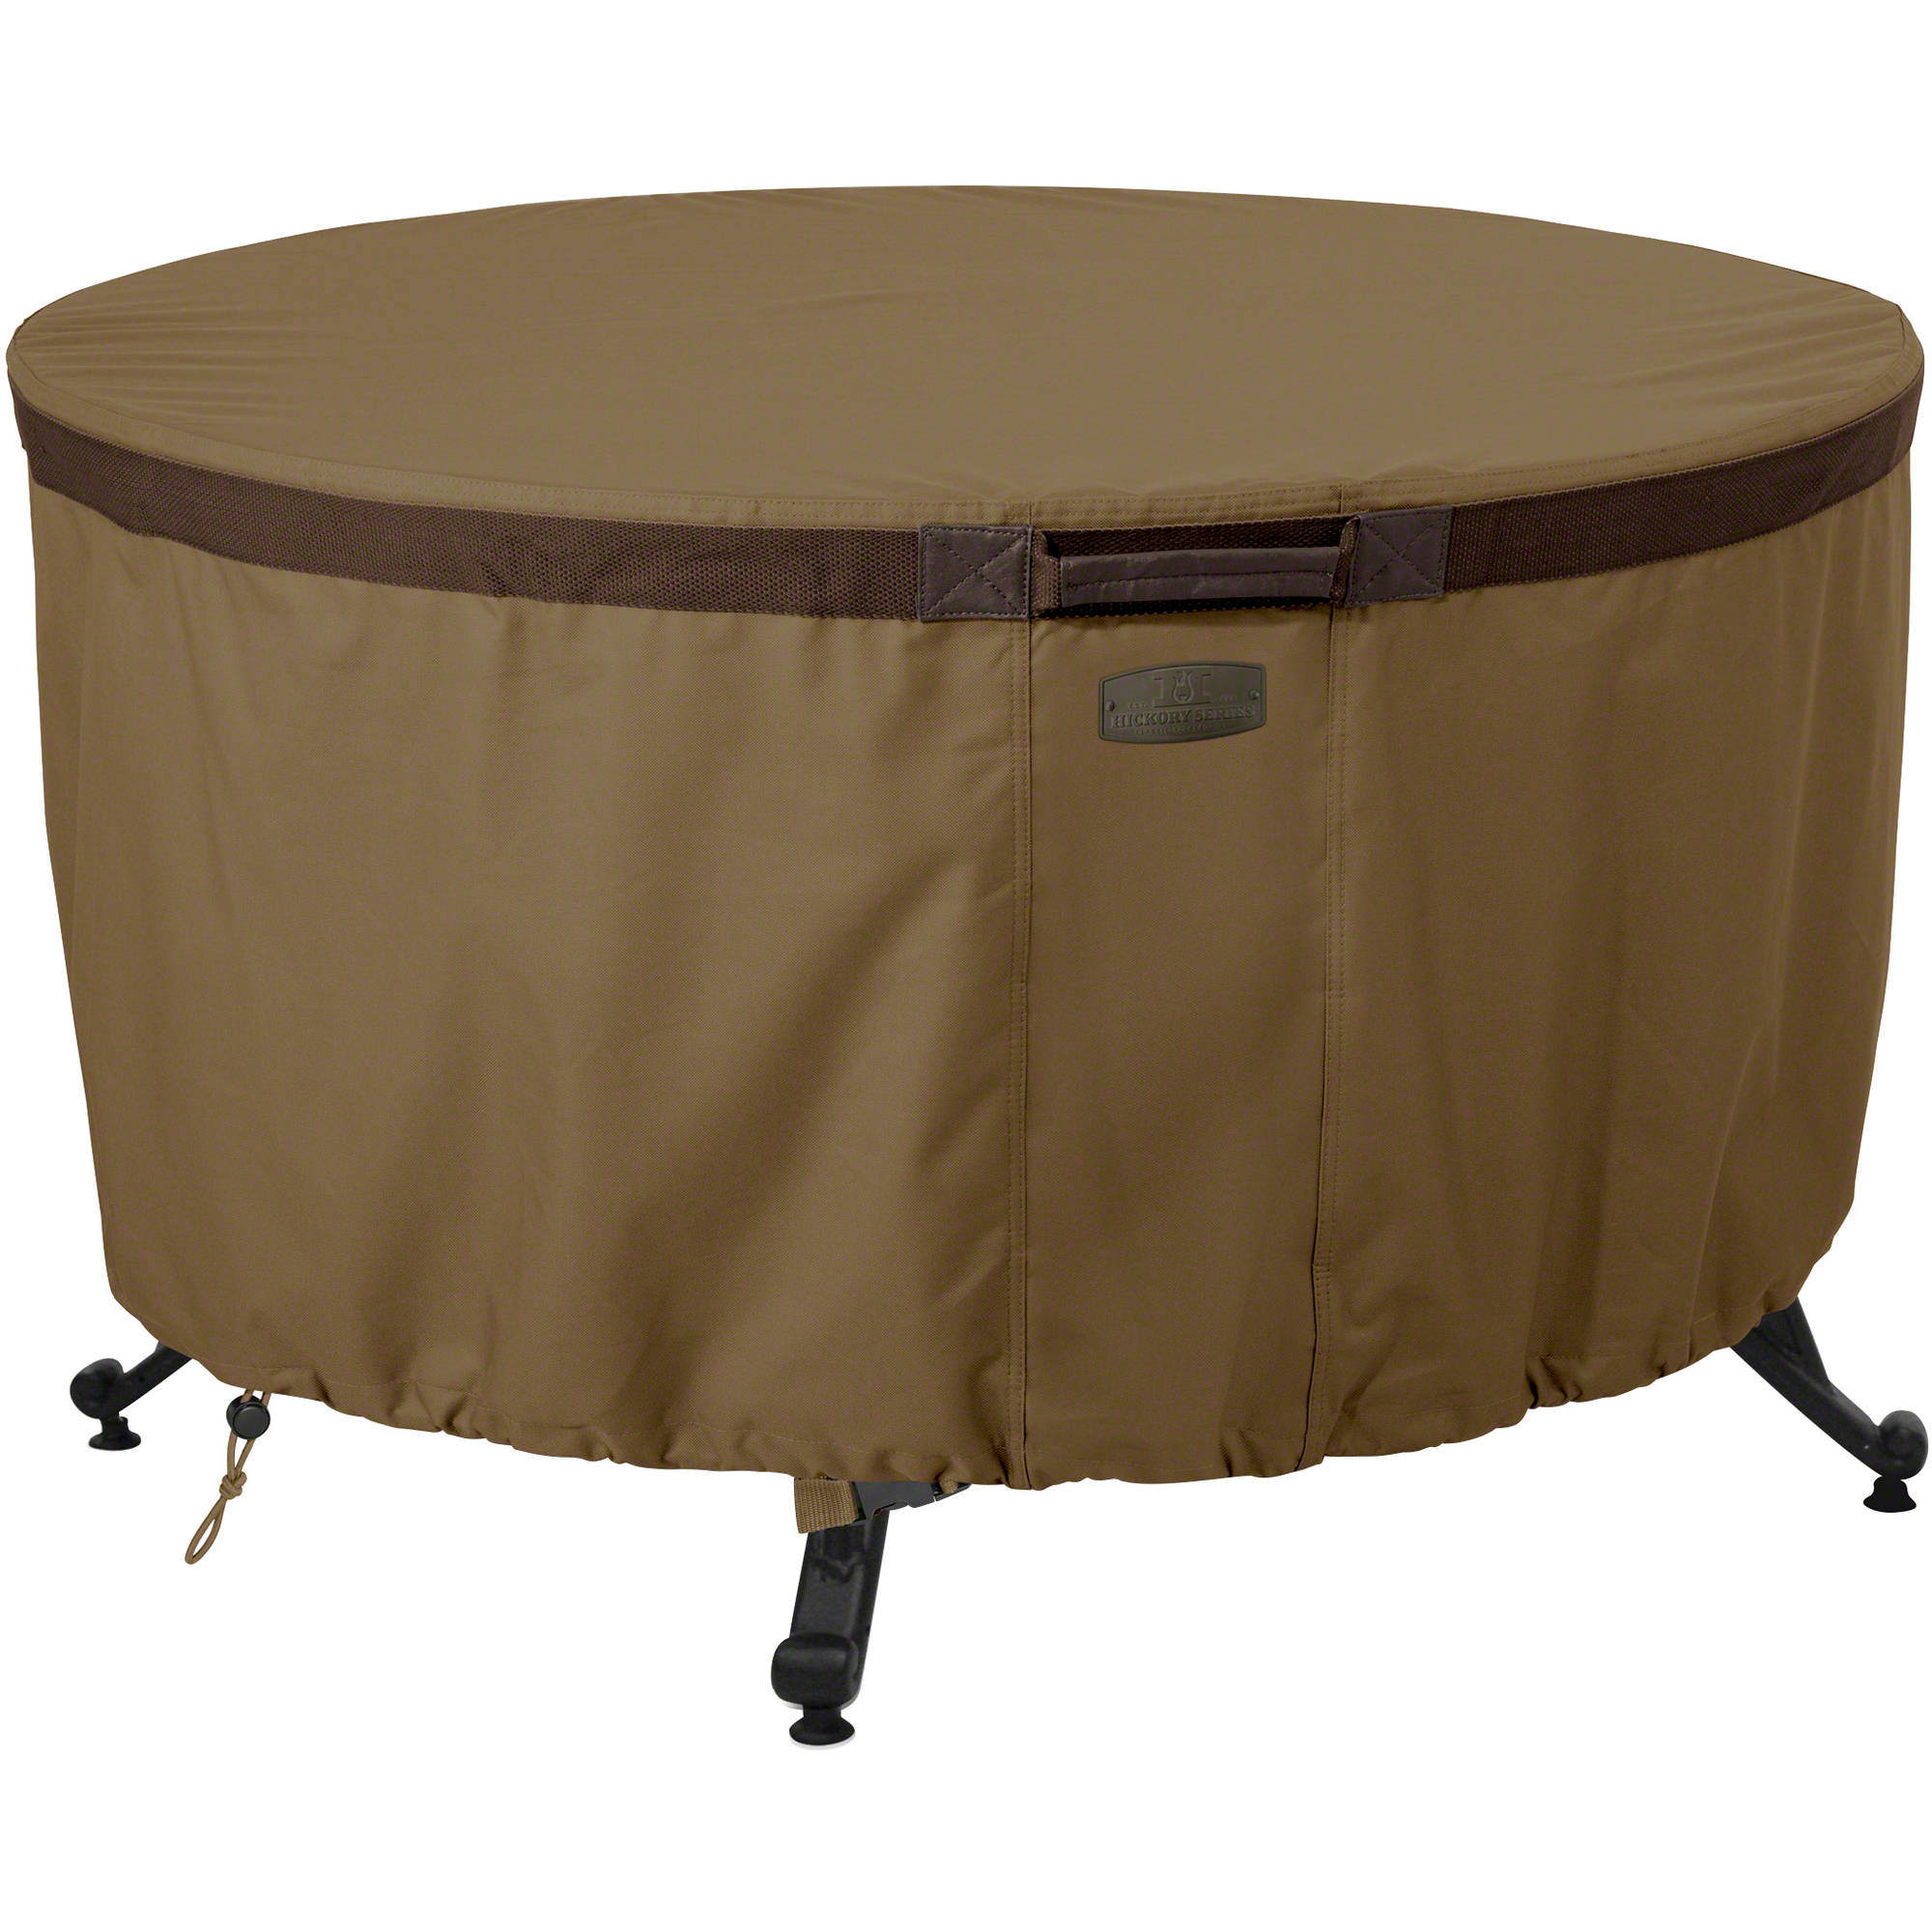 Classic Accessories Hickory Heavy-Duty Fire Pit Table Patio Storage Cover, Round